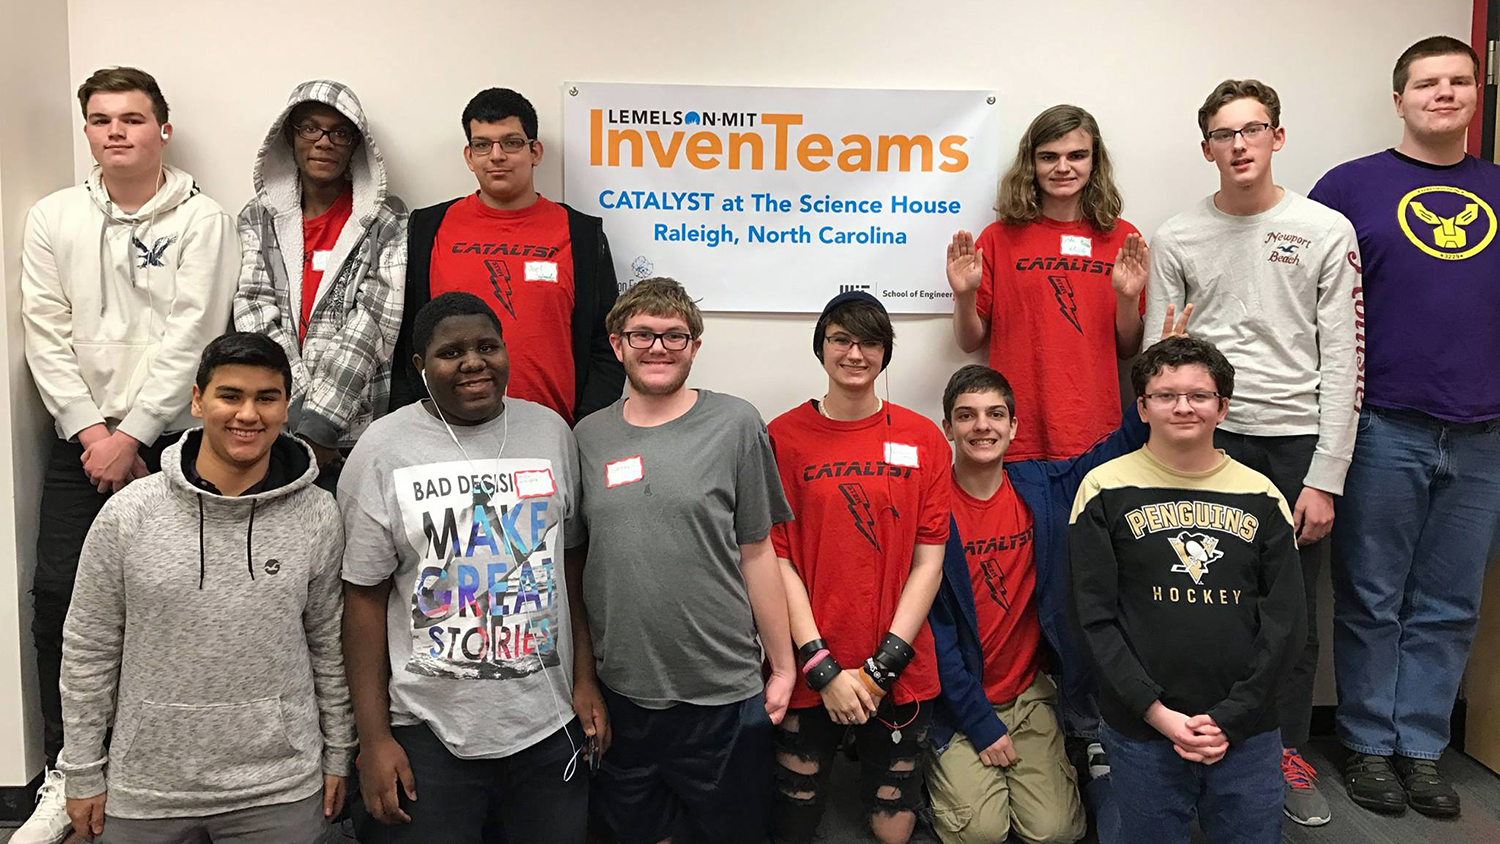 A group shot of the Catalyst InvenTeam in front of the banner bearing their name.